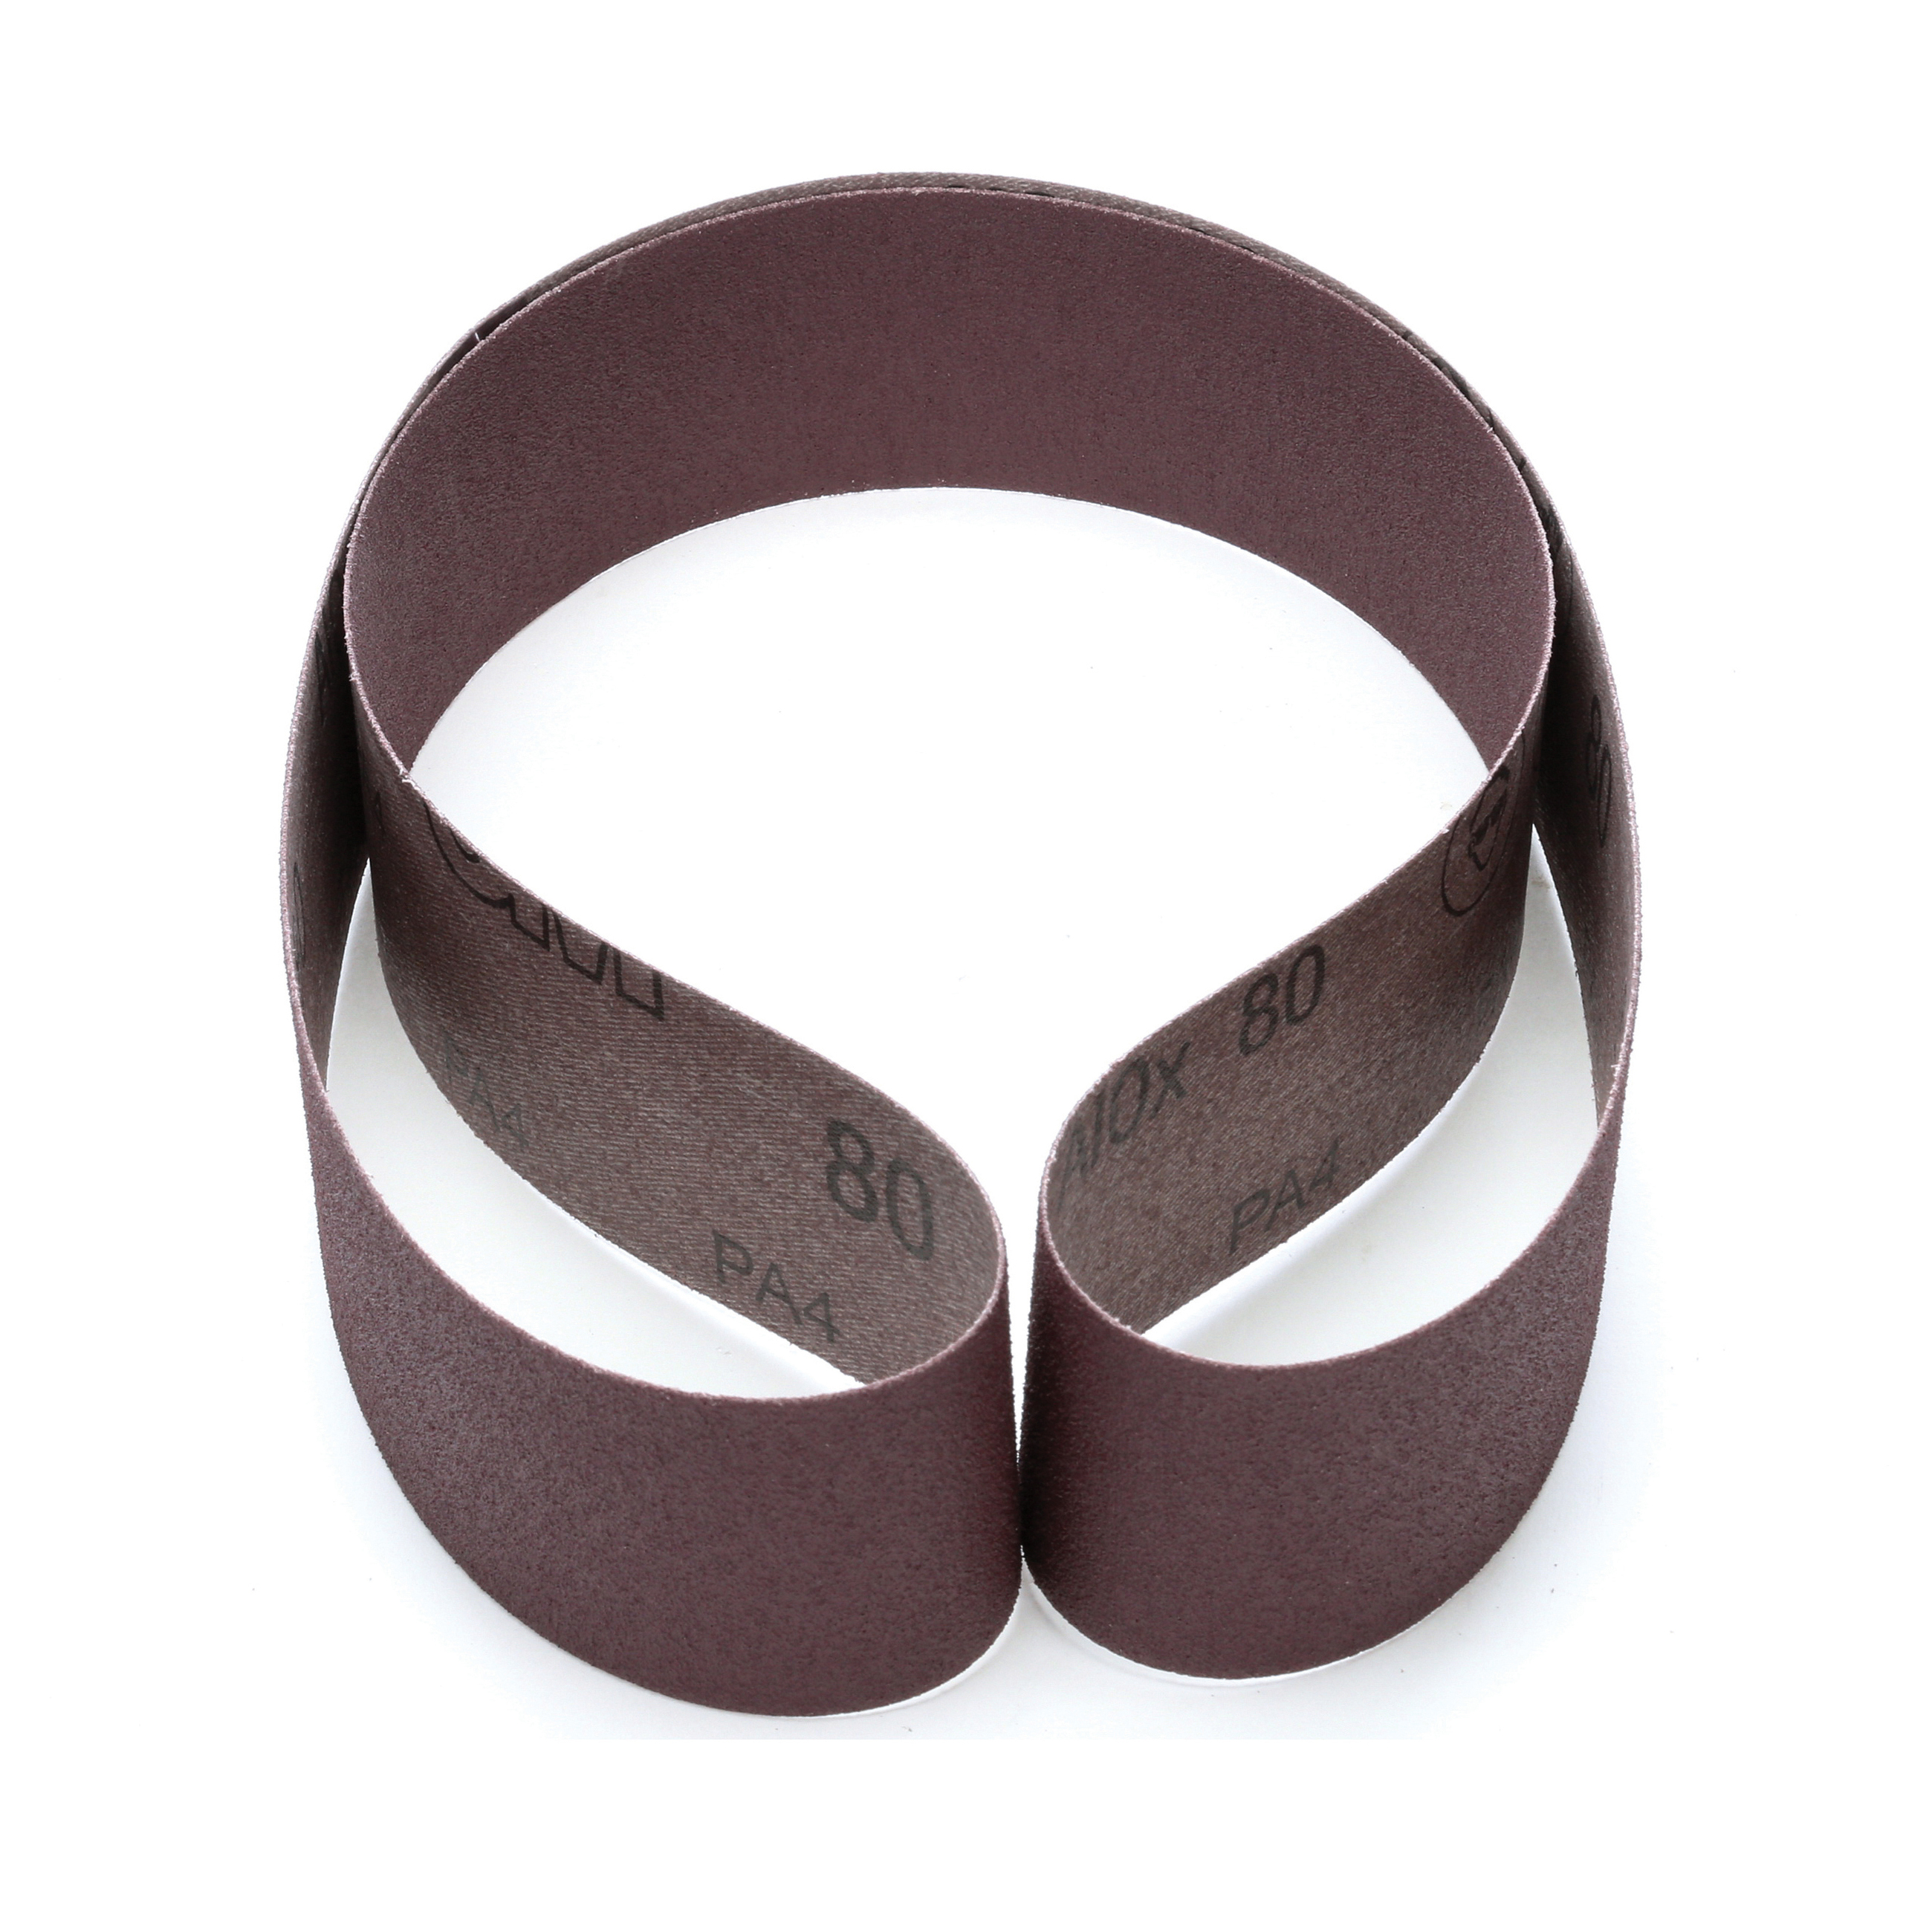 3M™ 051144-26562 Narrow Coated Abrasive Belt, 2 in W x 48 in L, 80 Grit, Medium Grade, Aluminum Oxide Abrasive, Cloth Backing